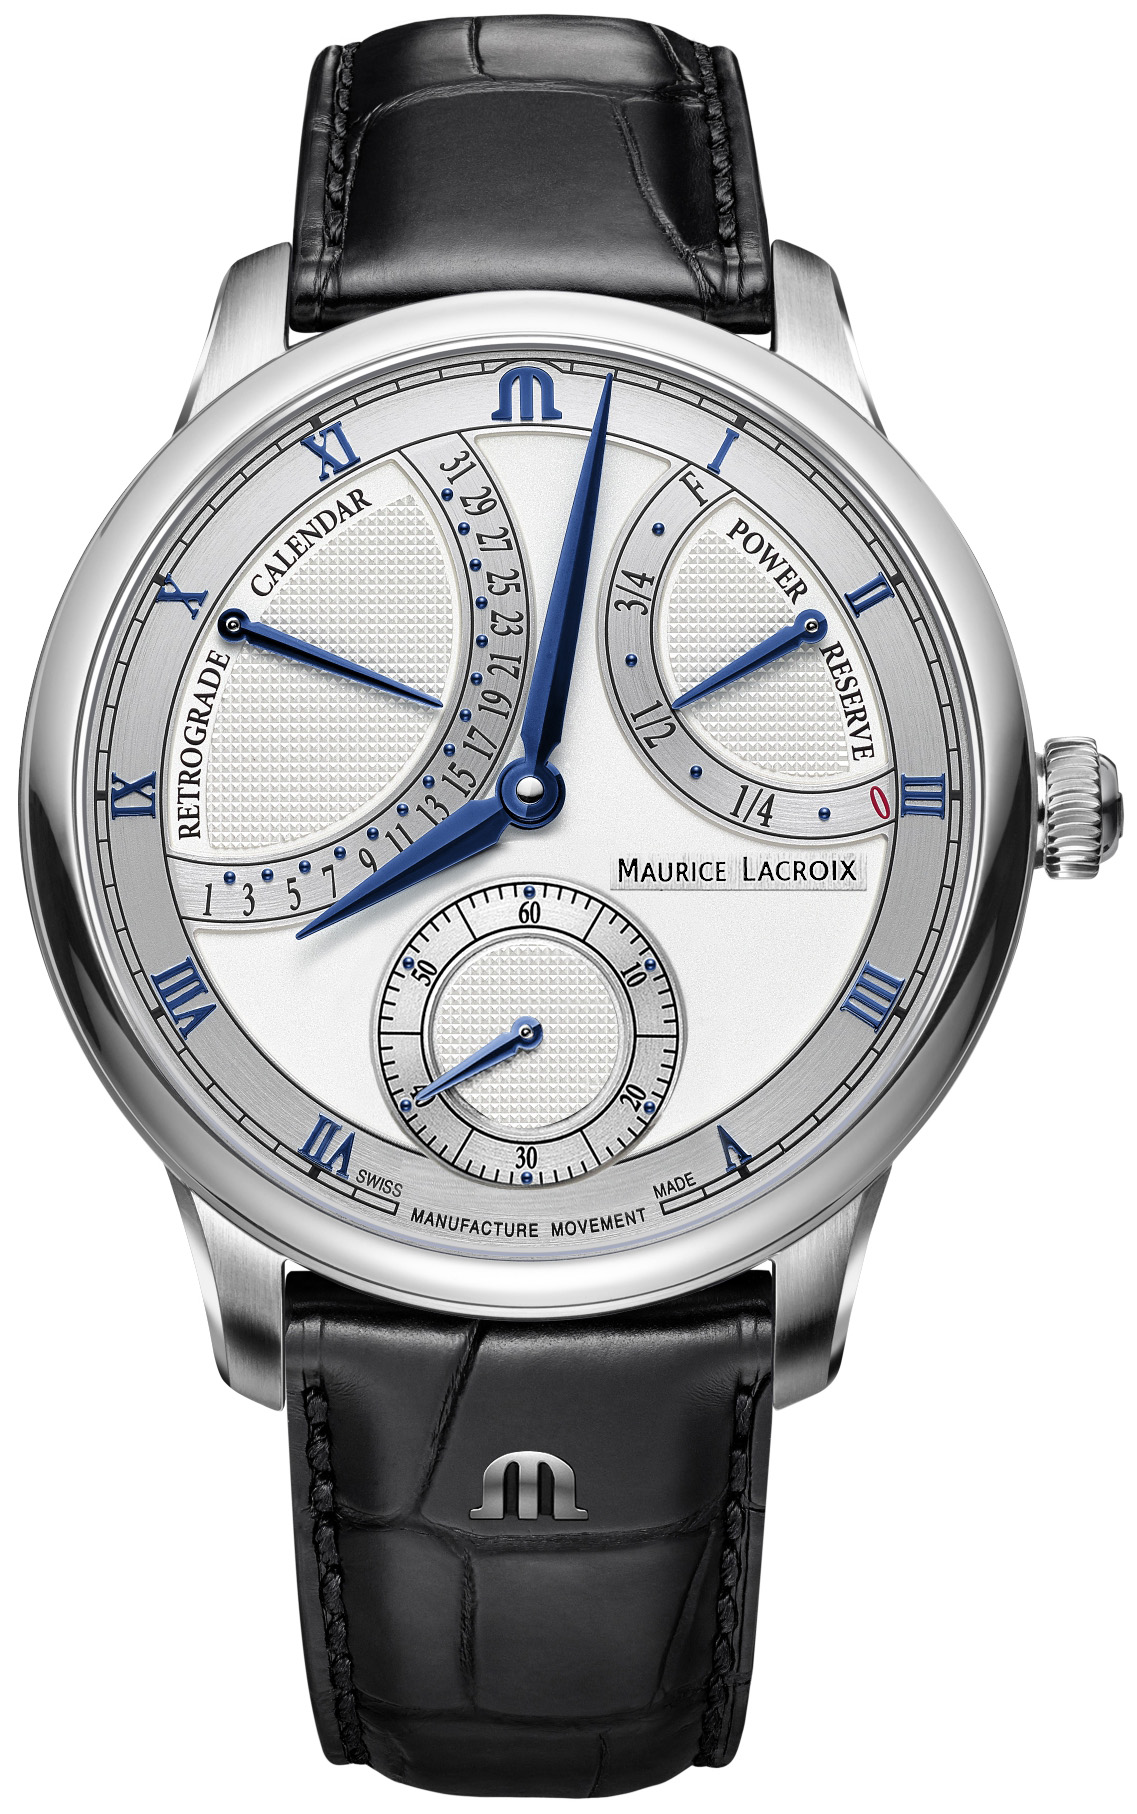 Maurice Lacroix Masterpiece watches